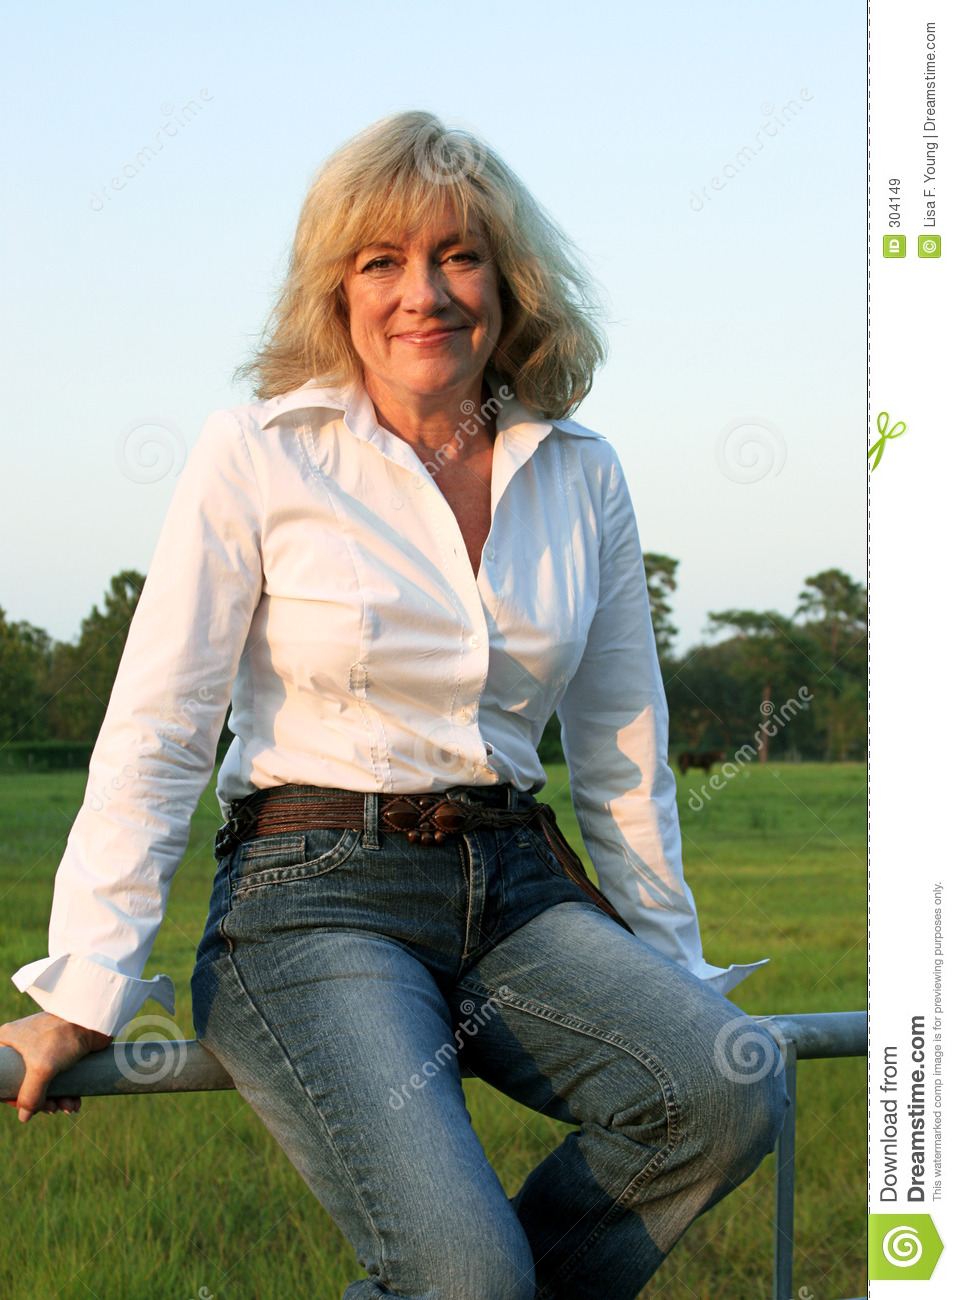 Country Western Woman 2 Royalty Free Stock Images - Image: 304149